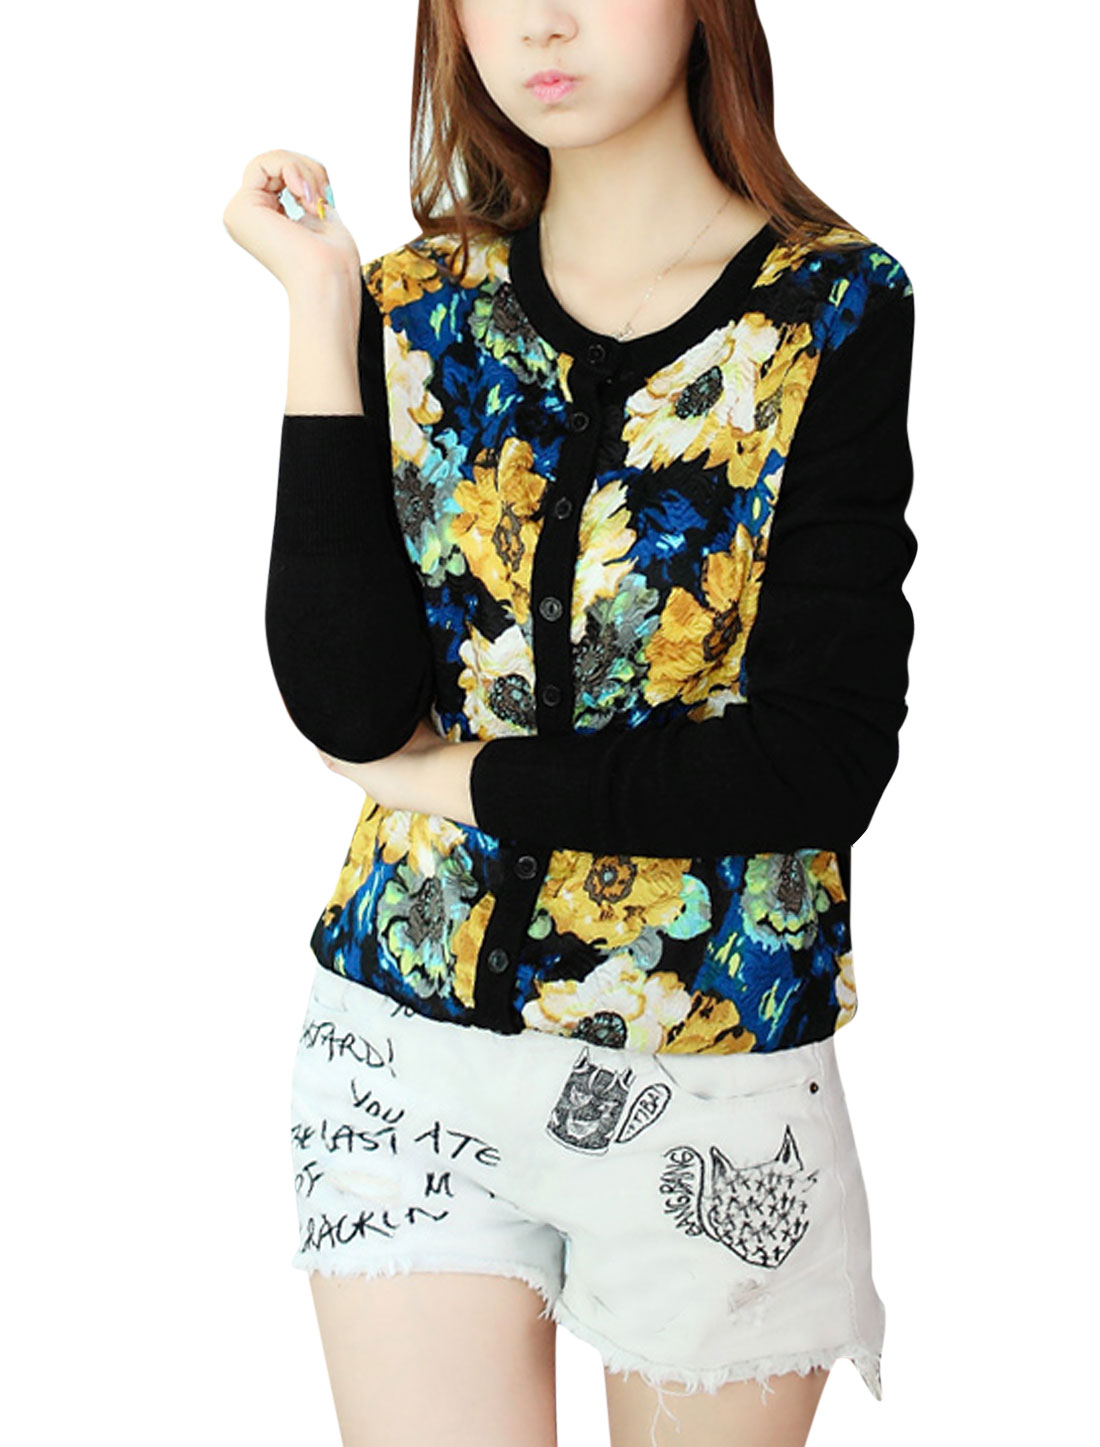 Lady Single Breasted Floral Prints Panel Design Knit Cardigan Black XS